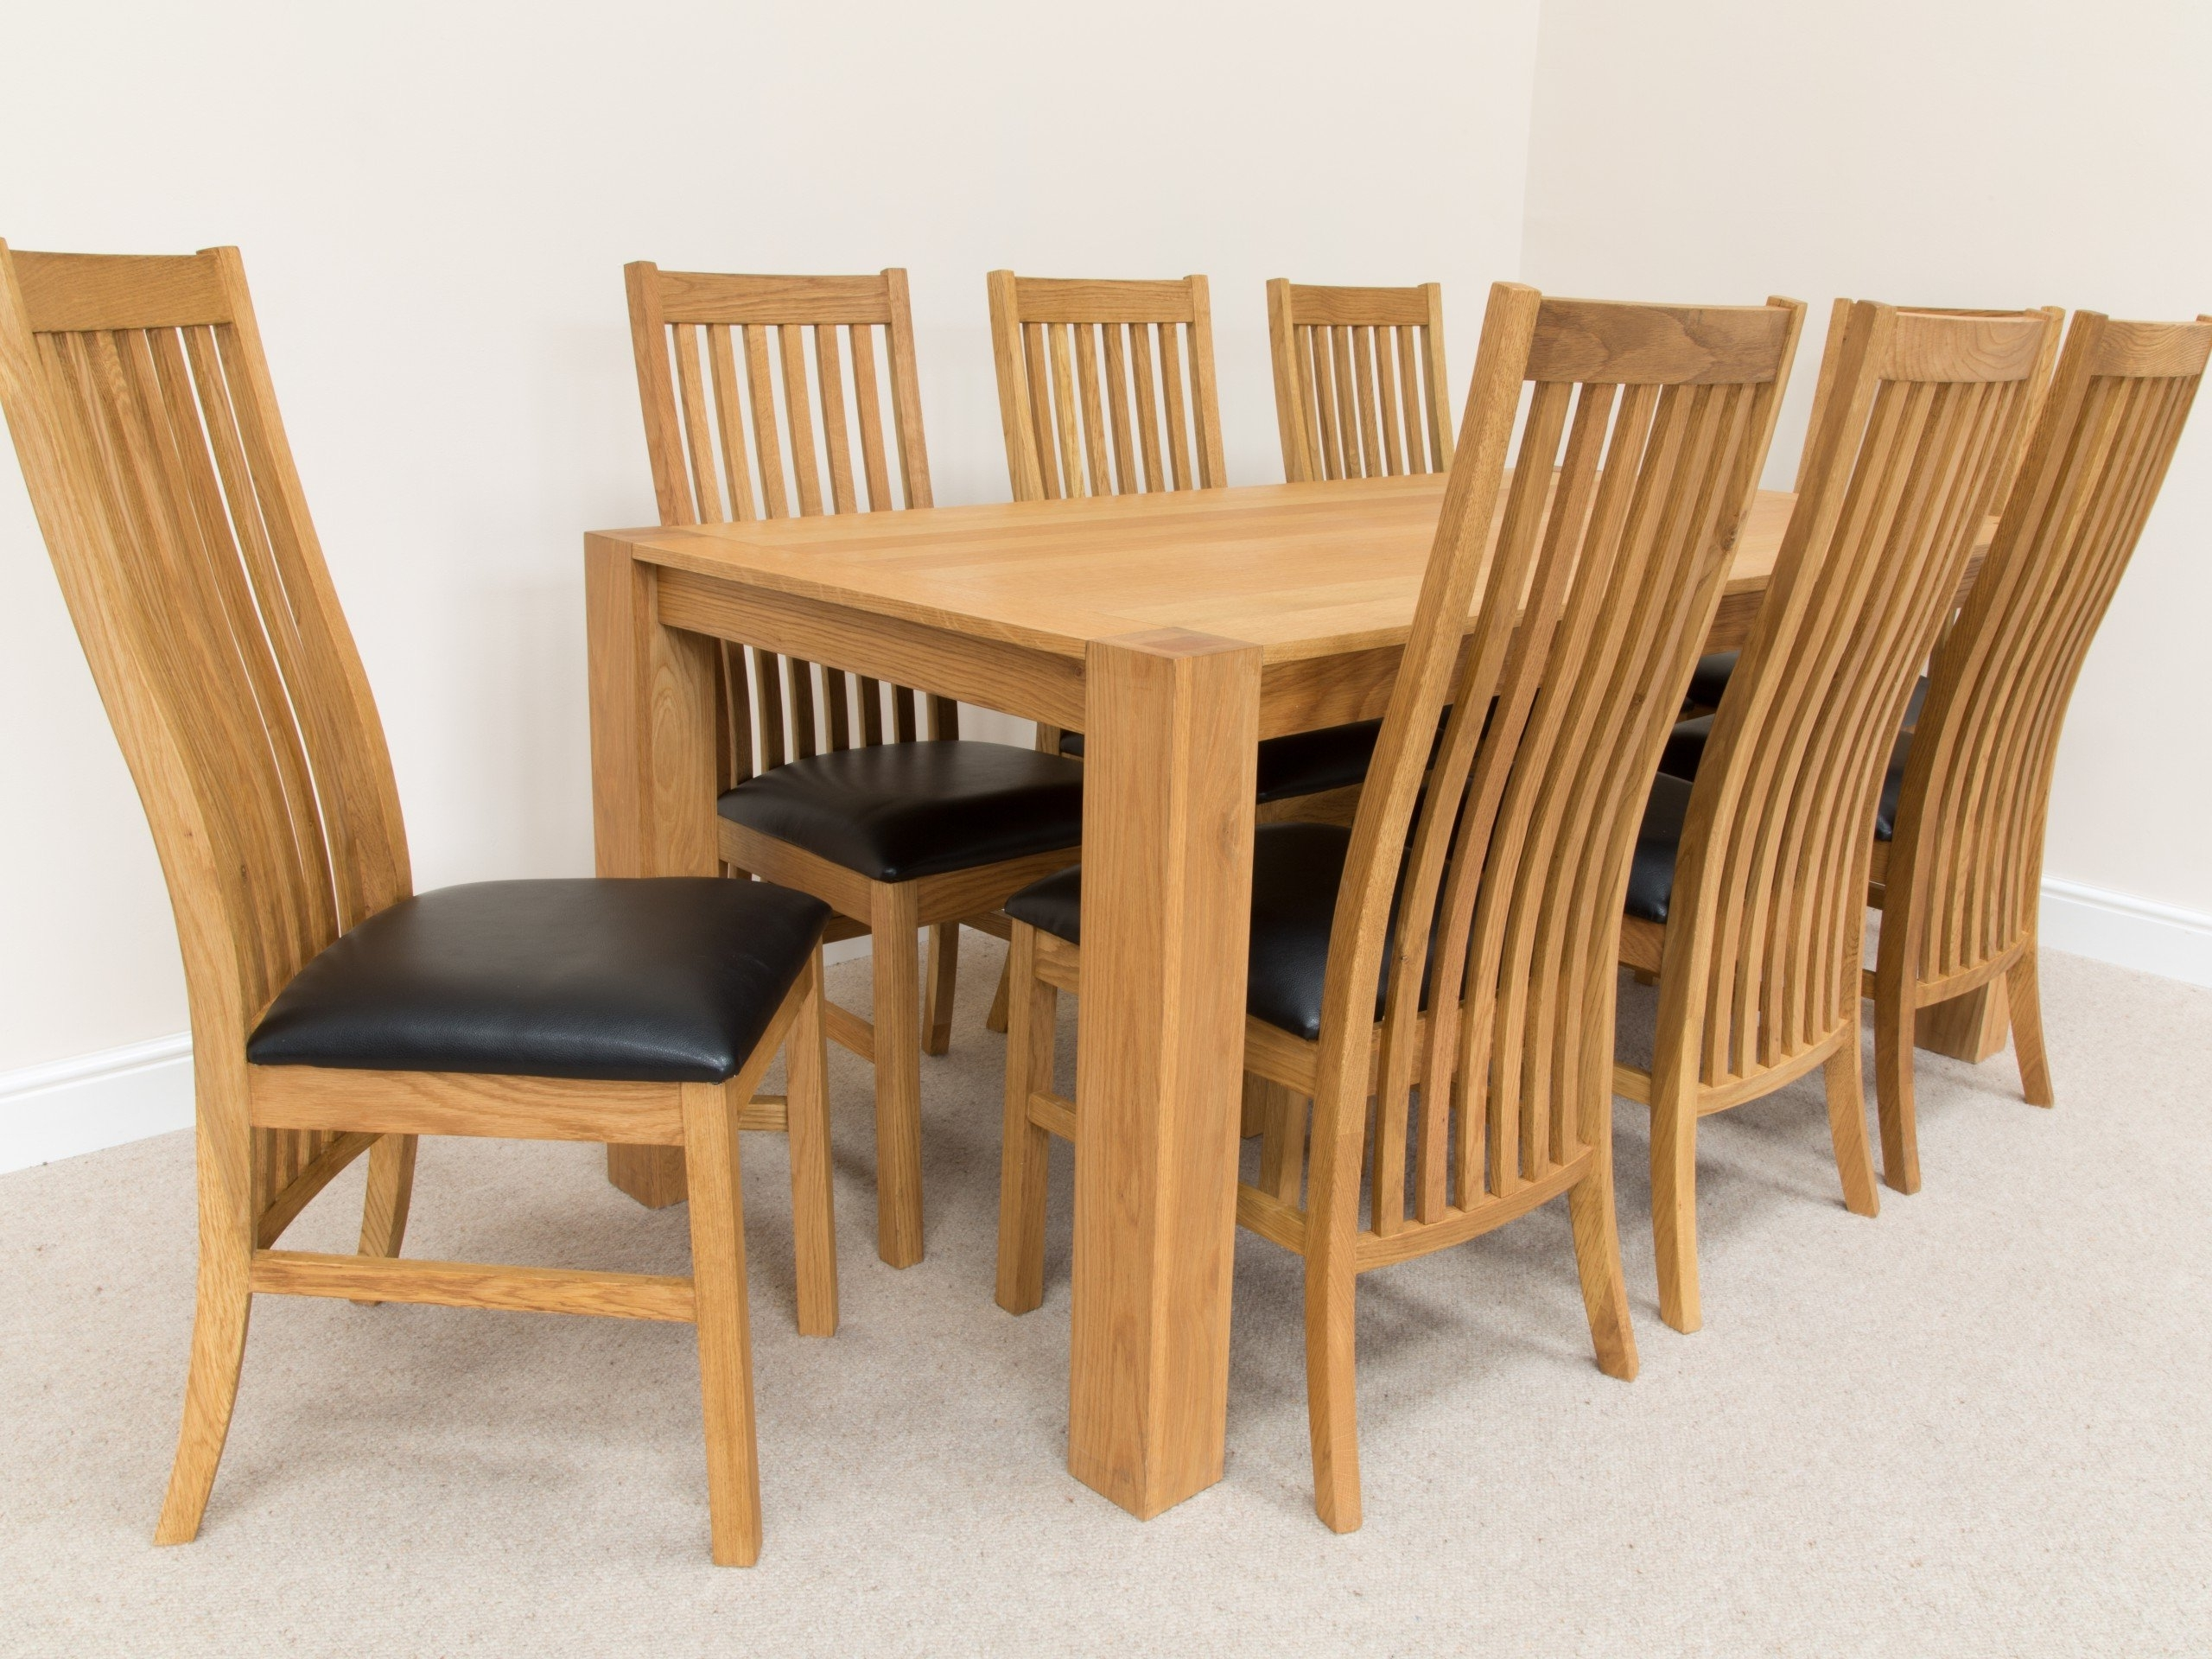 Oak Dining Tables And 8 Chairs Regarding Widely Used Dining Room Table : Square Oak Dining Table For 8 Modern Dining (View 17 of 25)